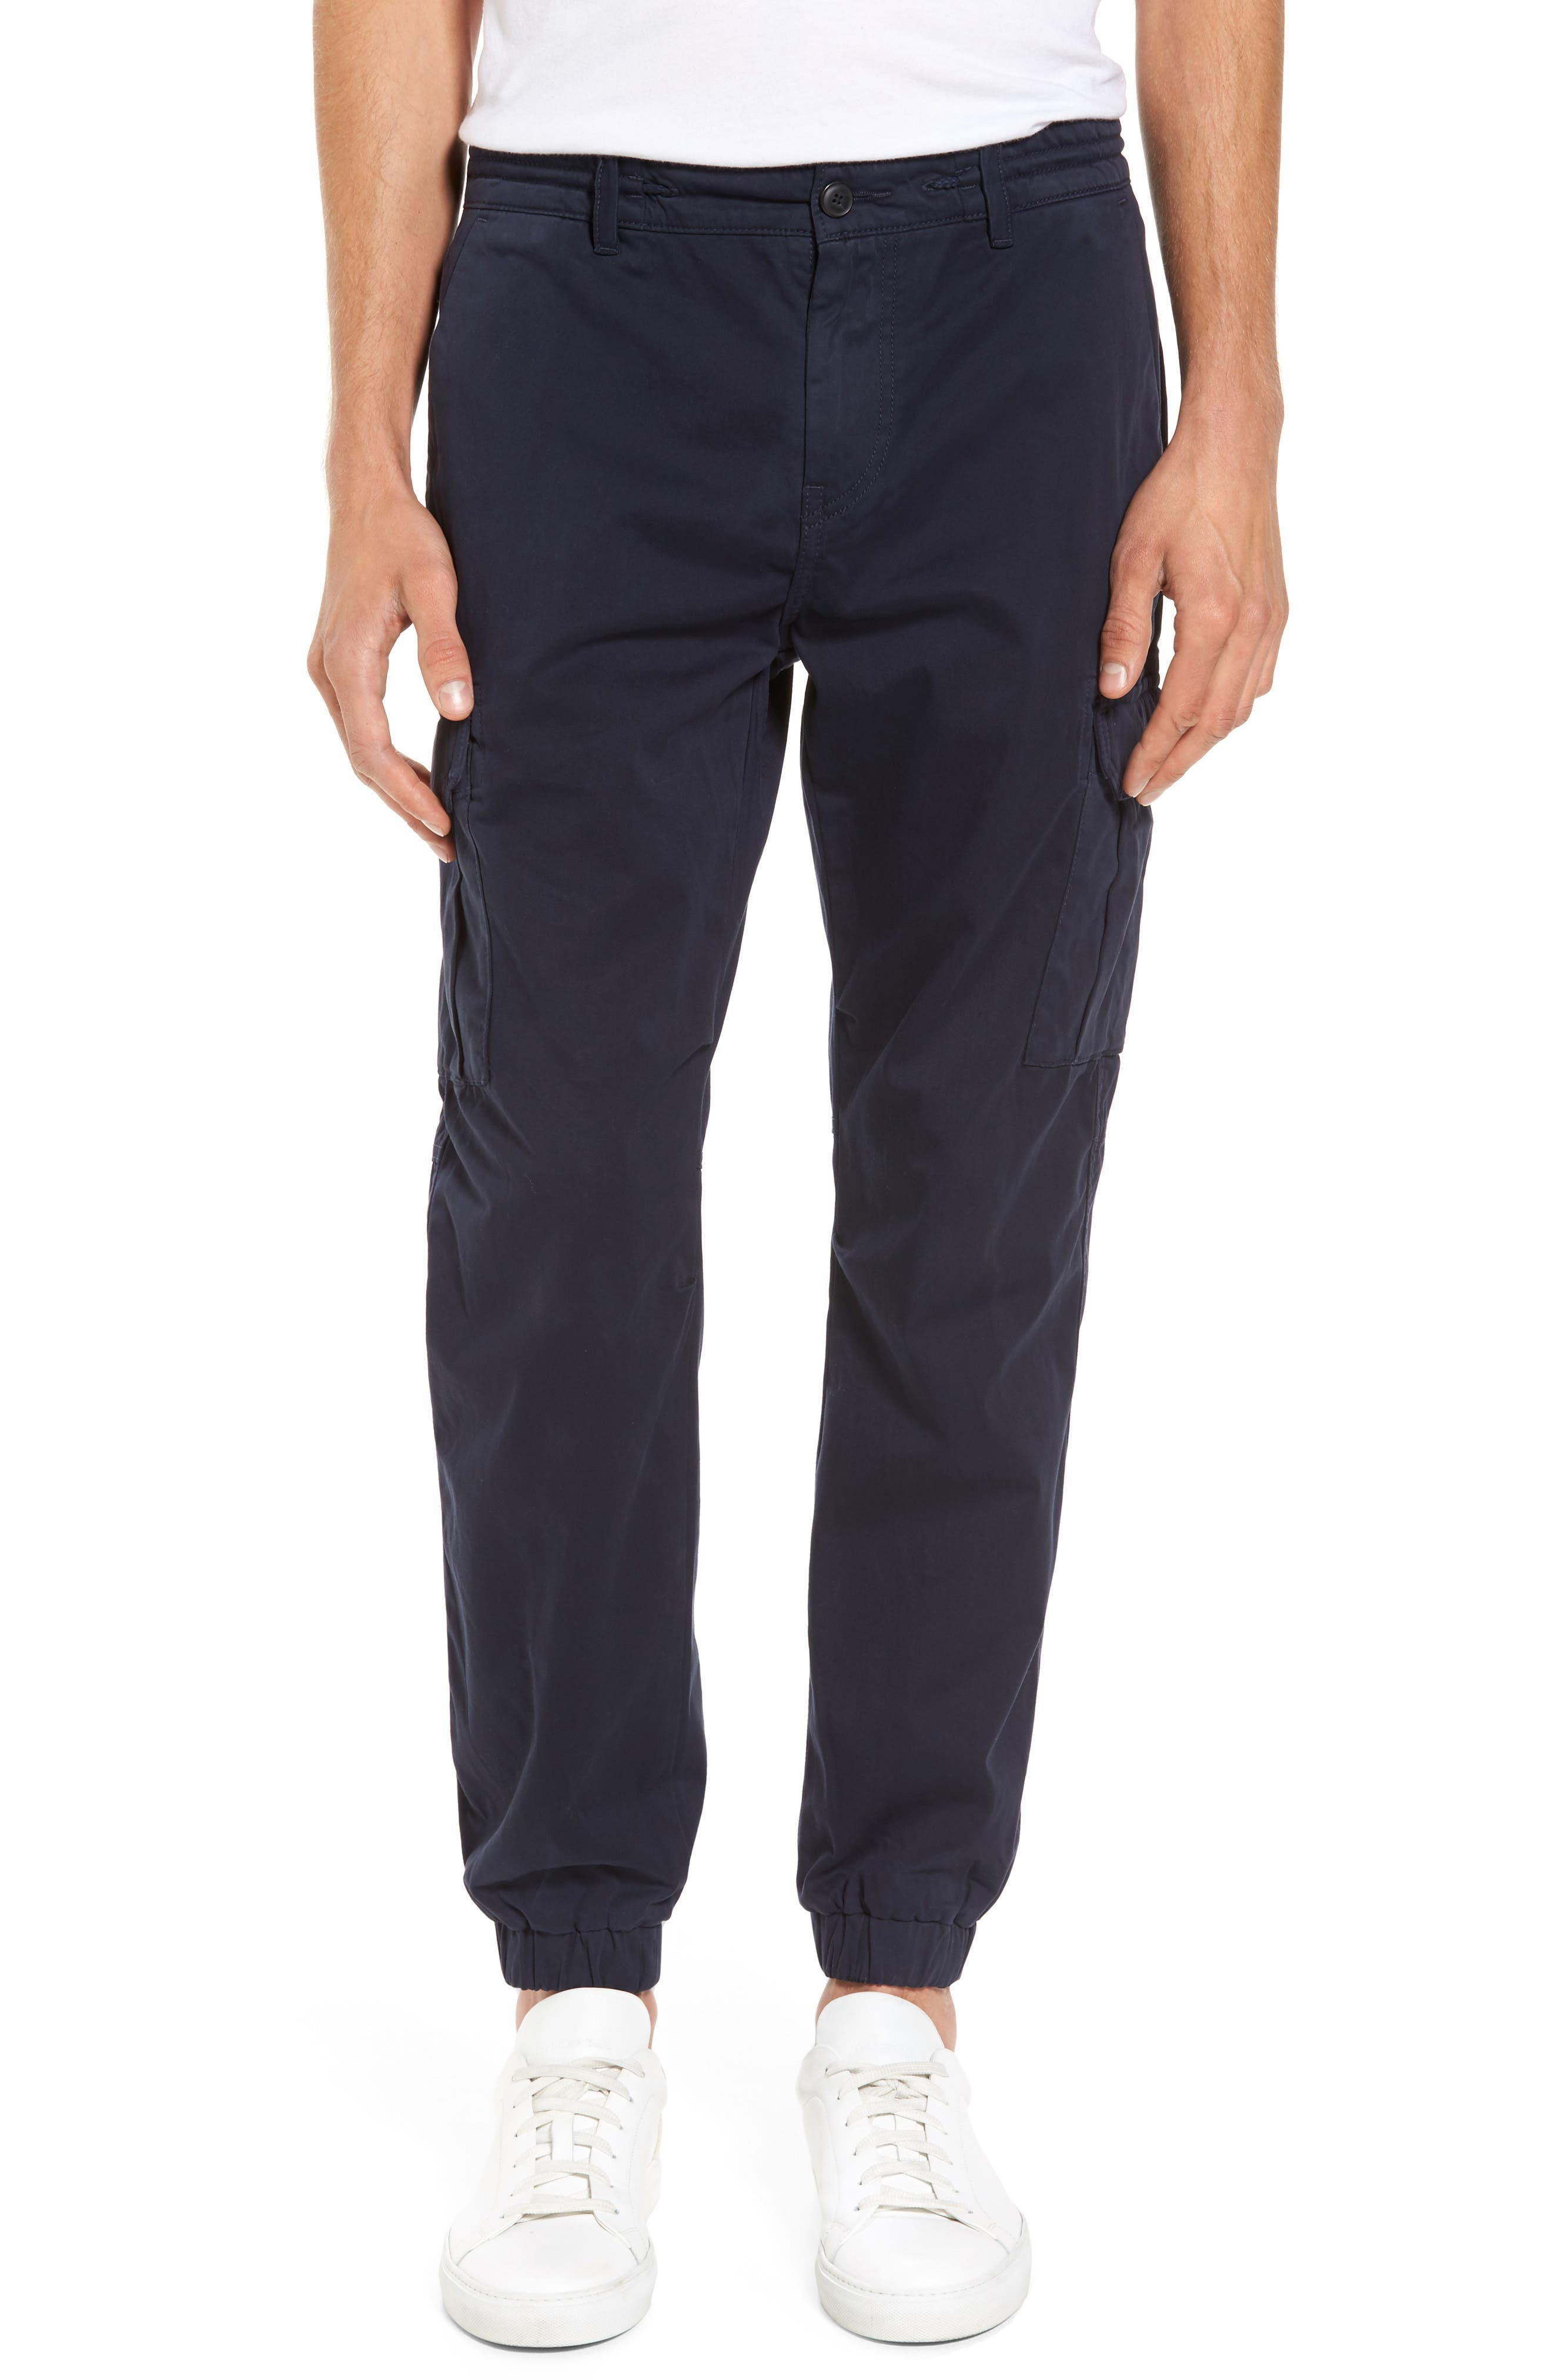 Shay 2 Cargo Pants,                         Main,                         color, 404